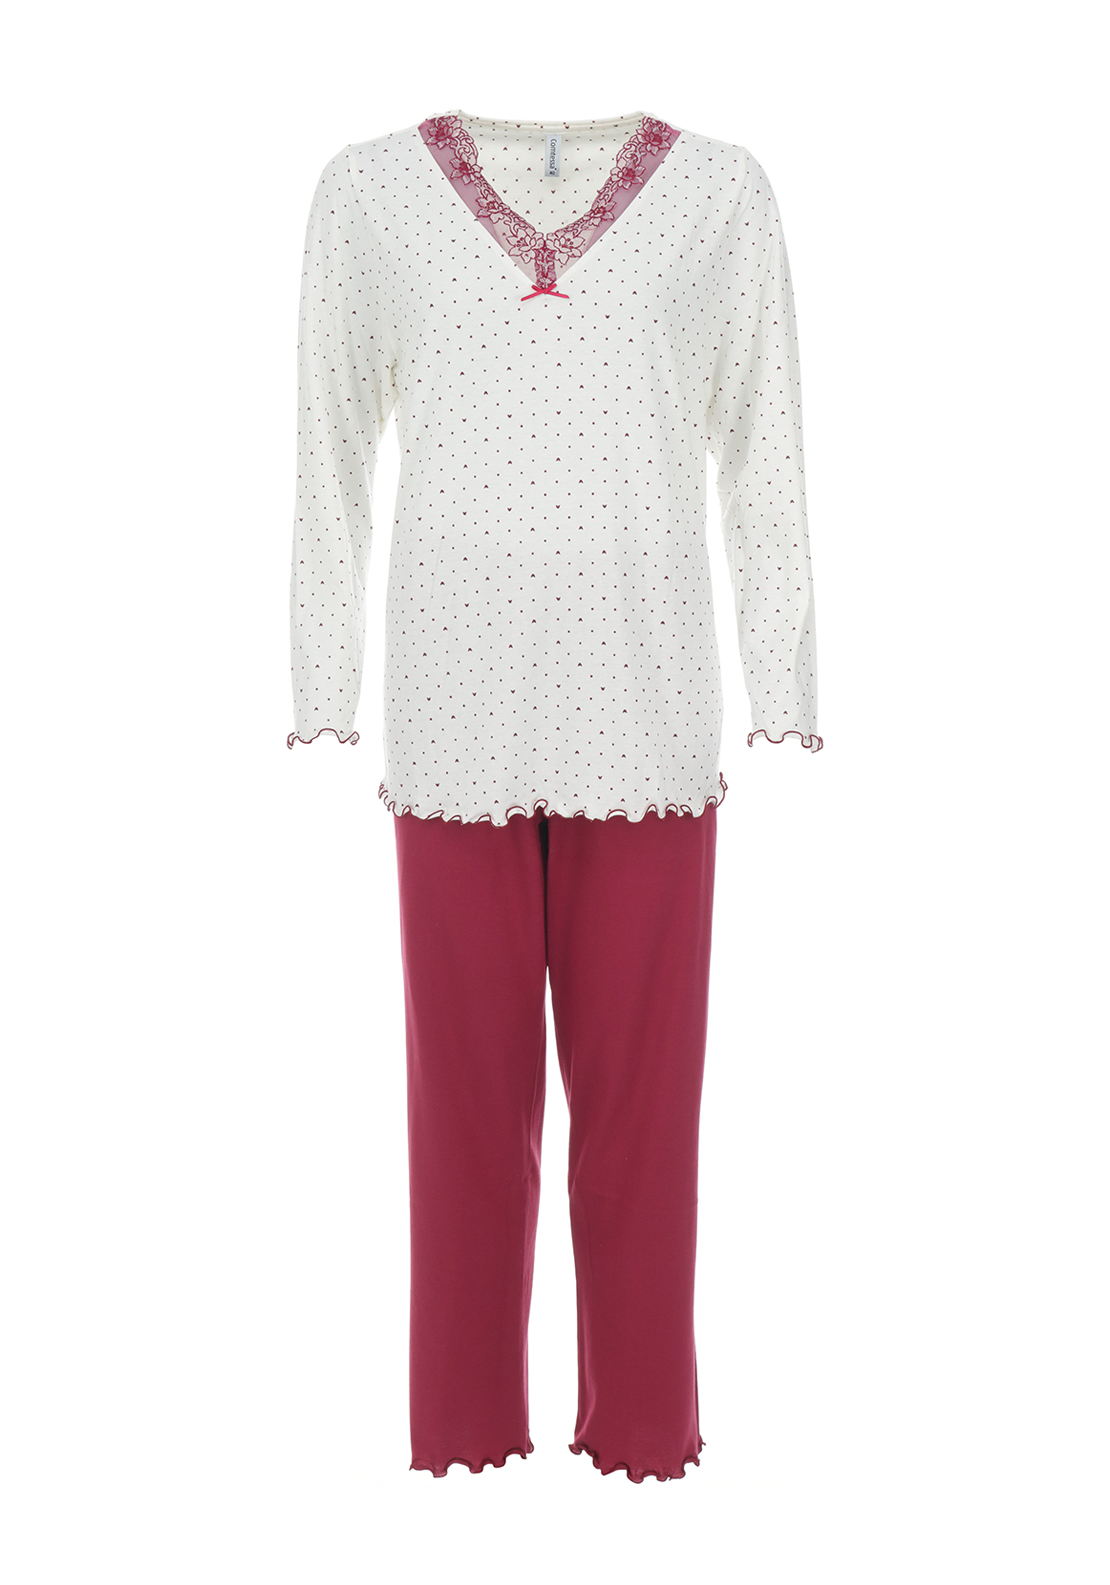 Comtessa Lace Trim Pyjama Set, Wine & Cream